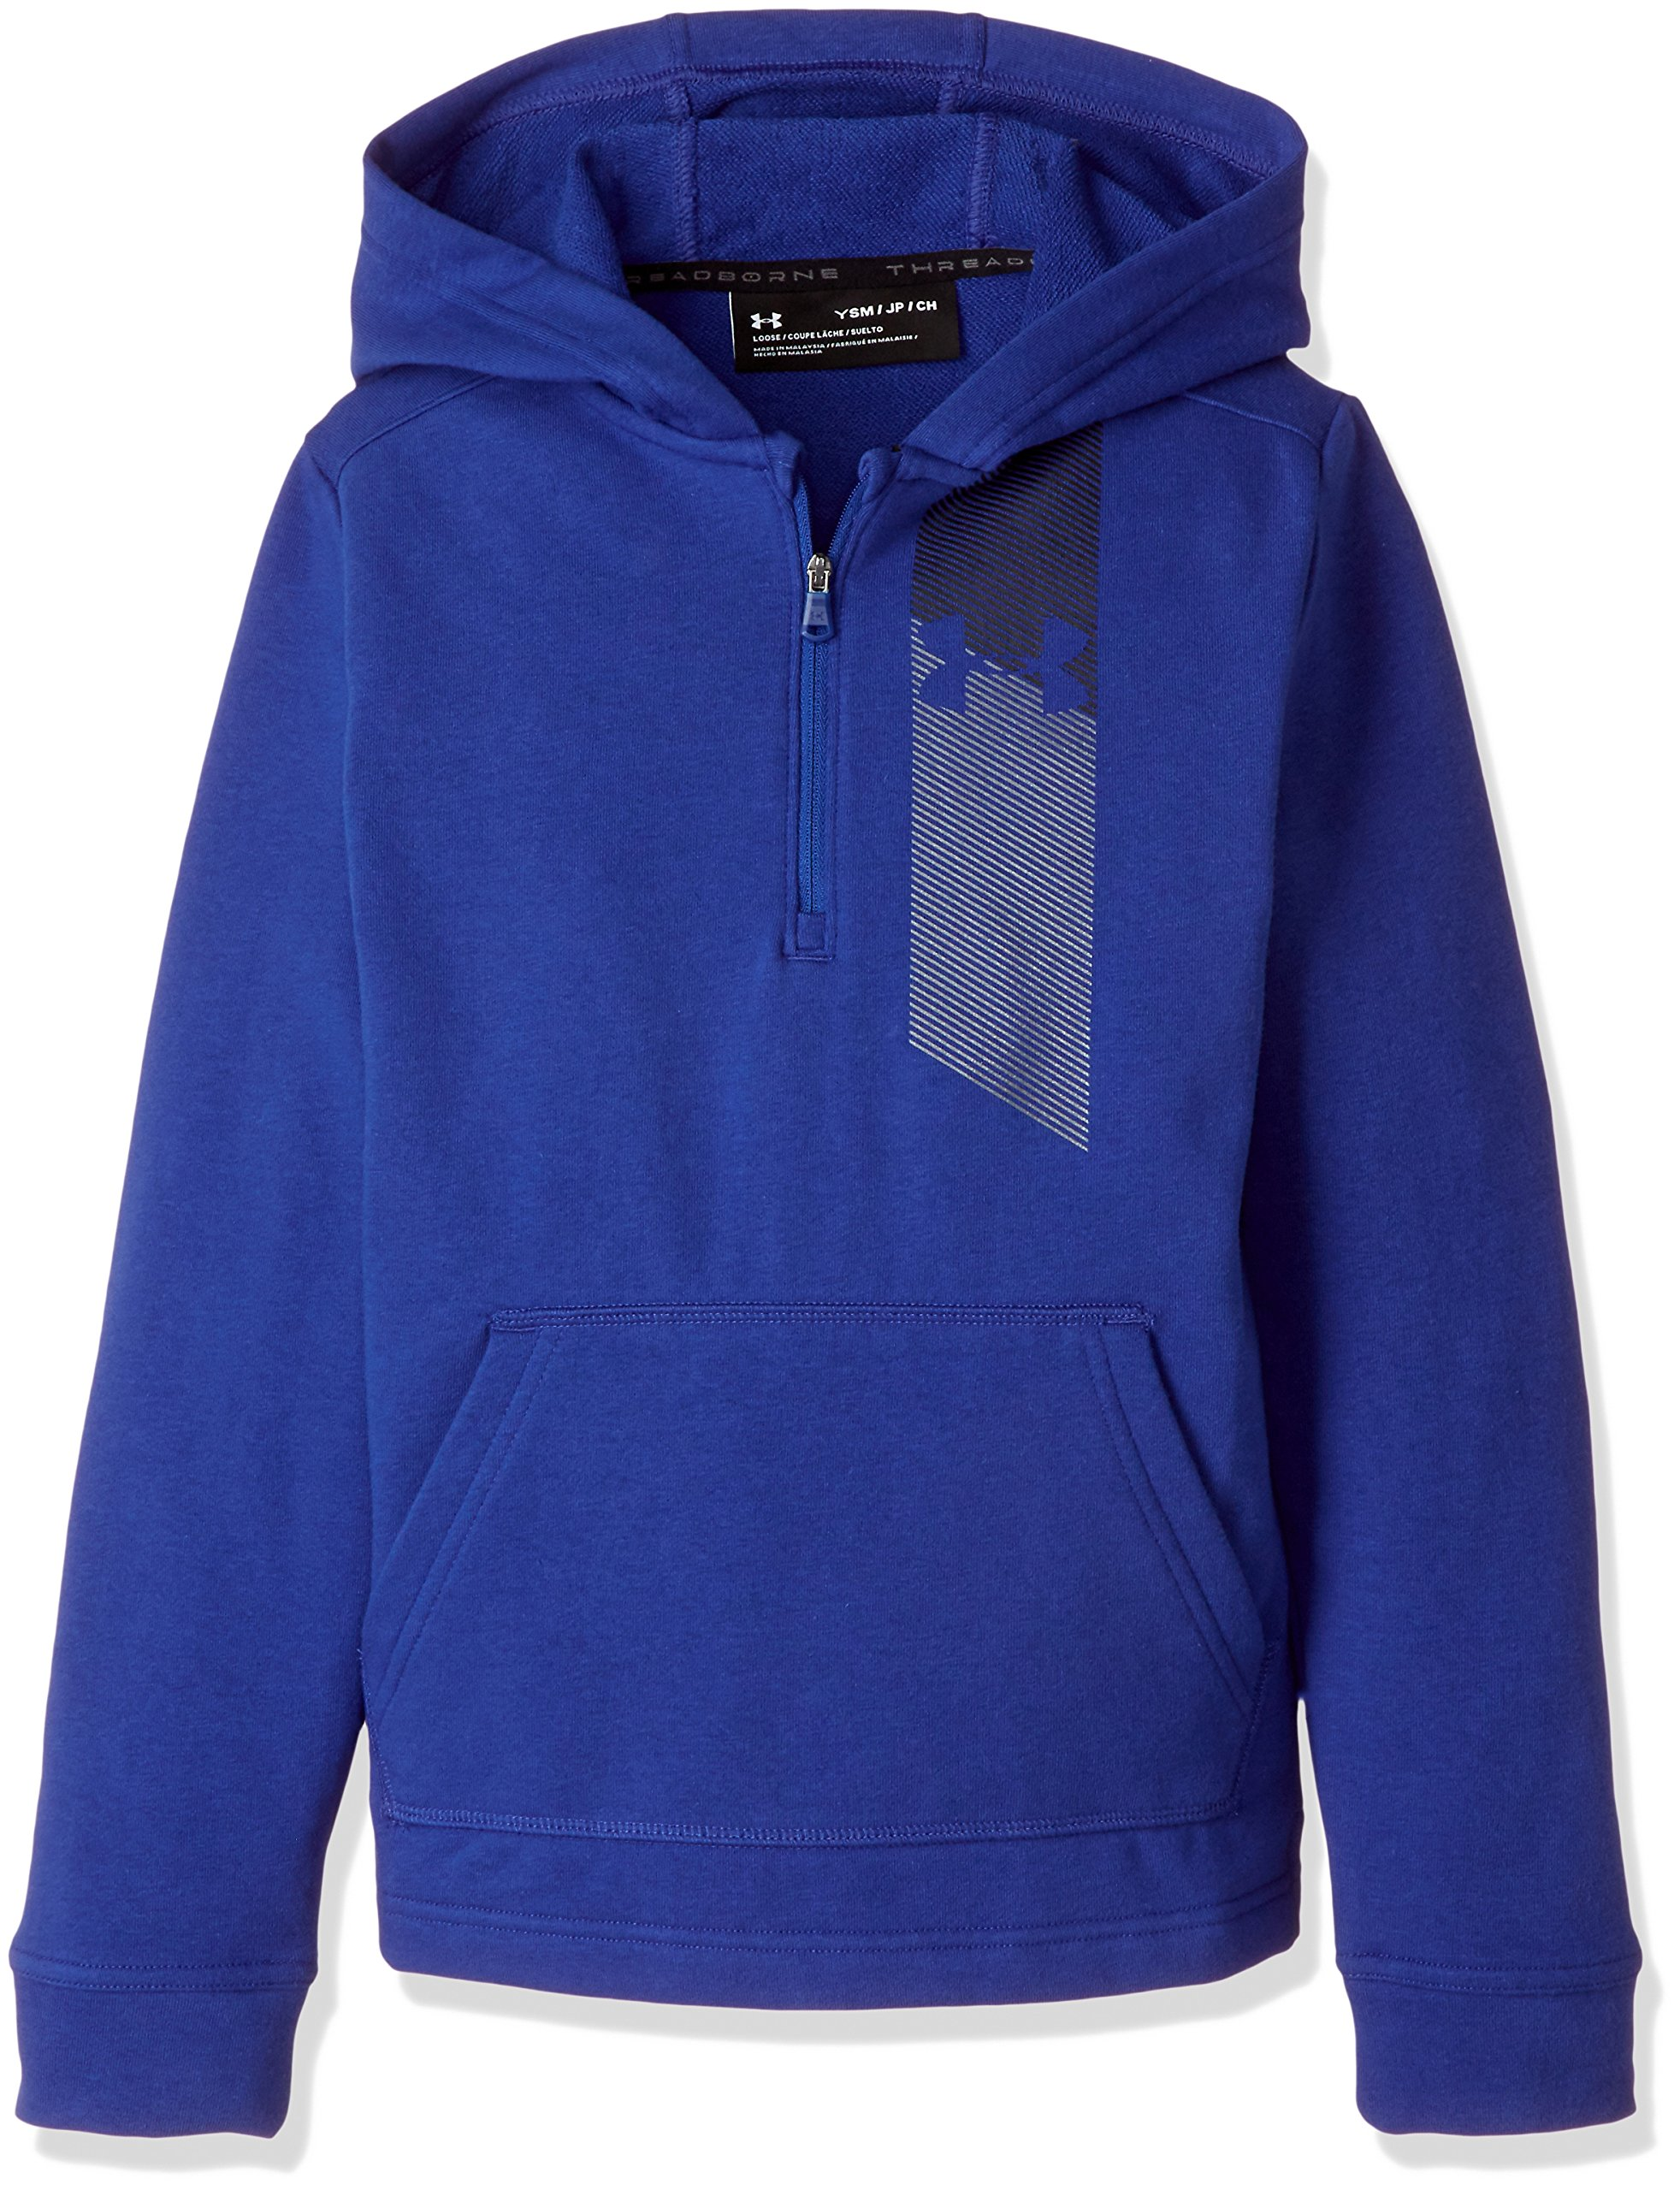 Under Armour Boys' Microthread Terry ½ Zip Hoodie, Royal (400)/Graphite, Youth X-Large